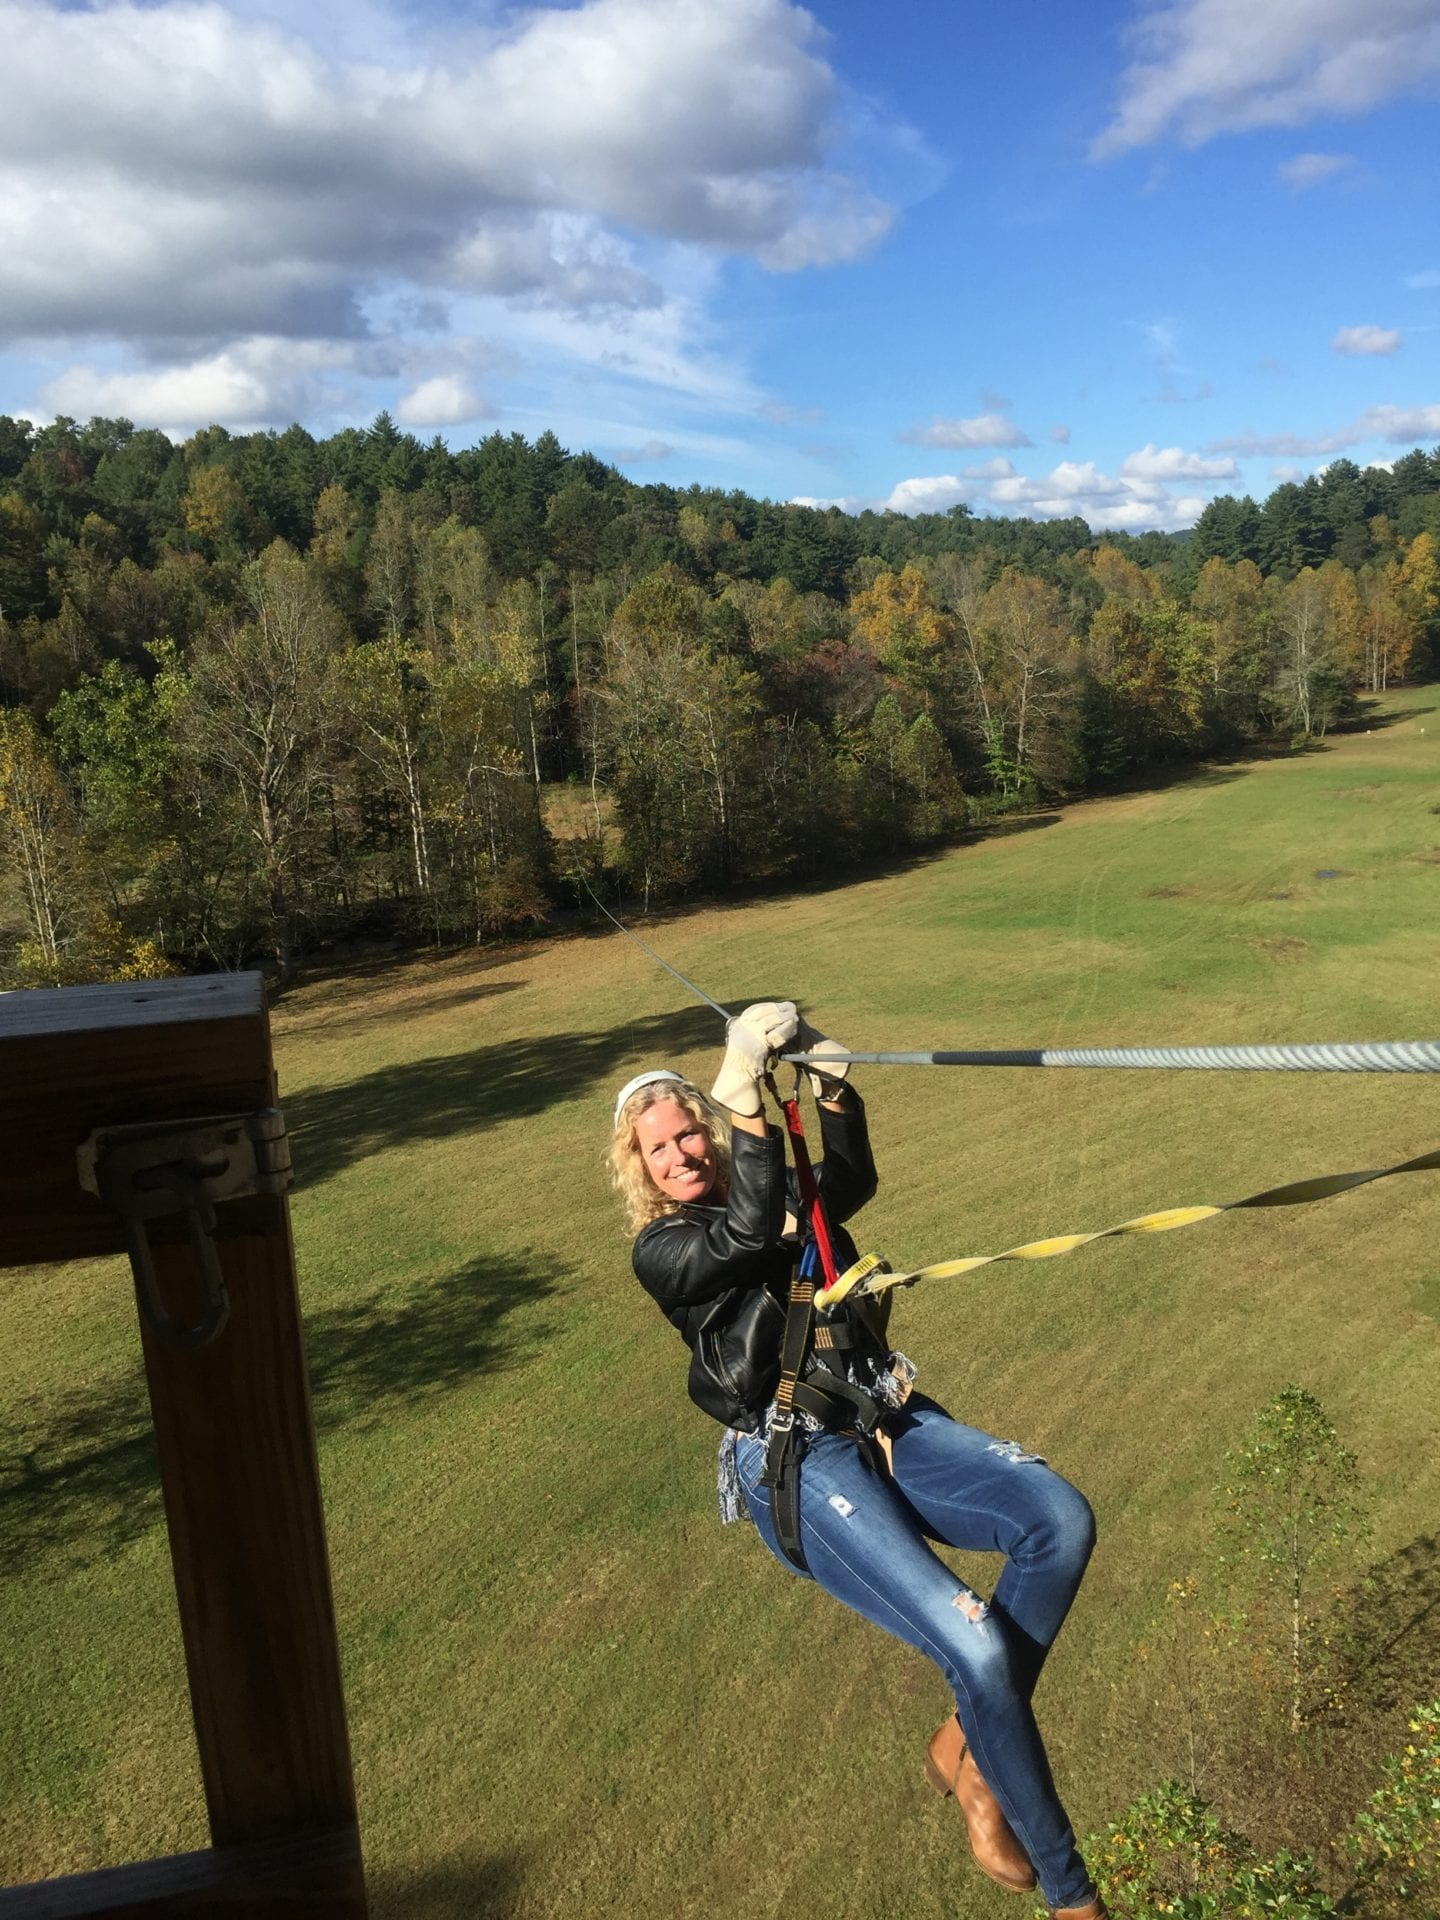 tanya chappell Ziplining near Red Top Mountain, GA